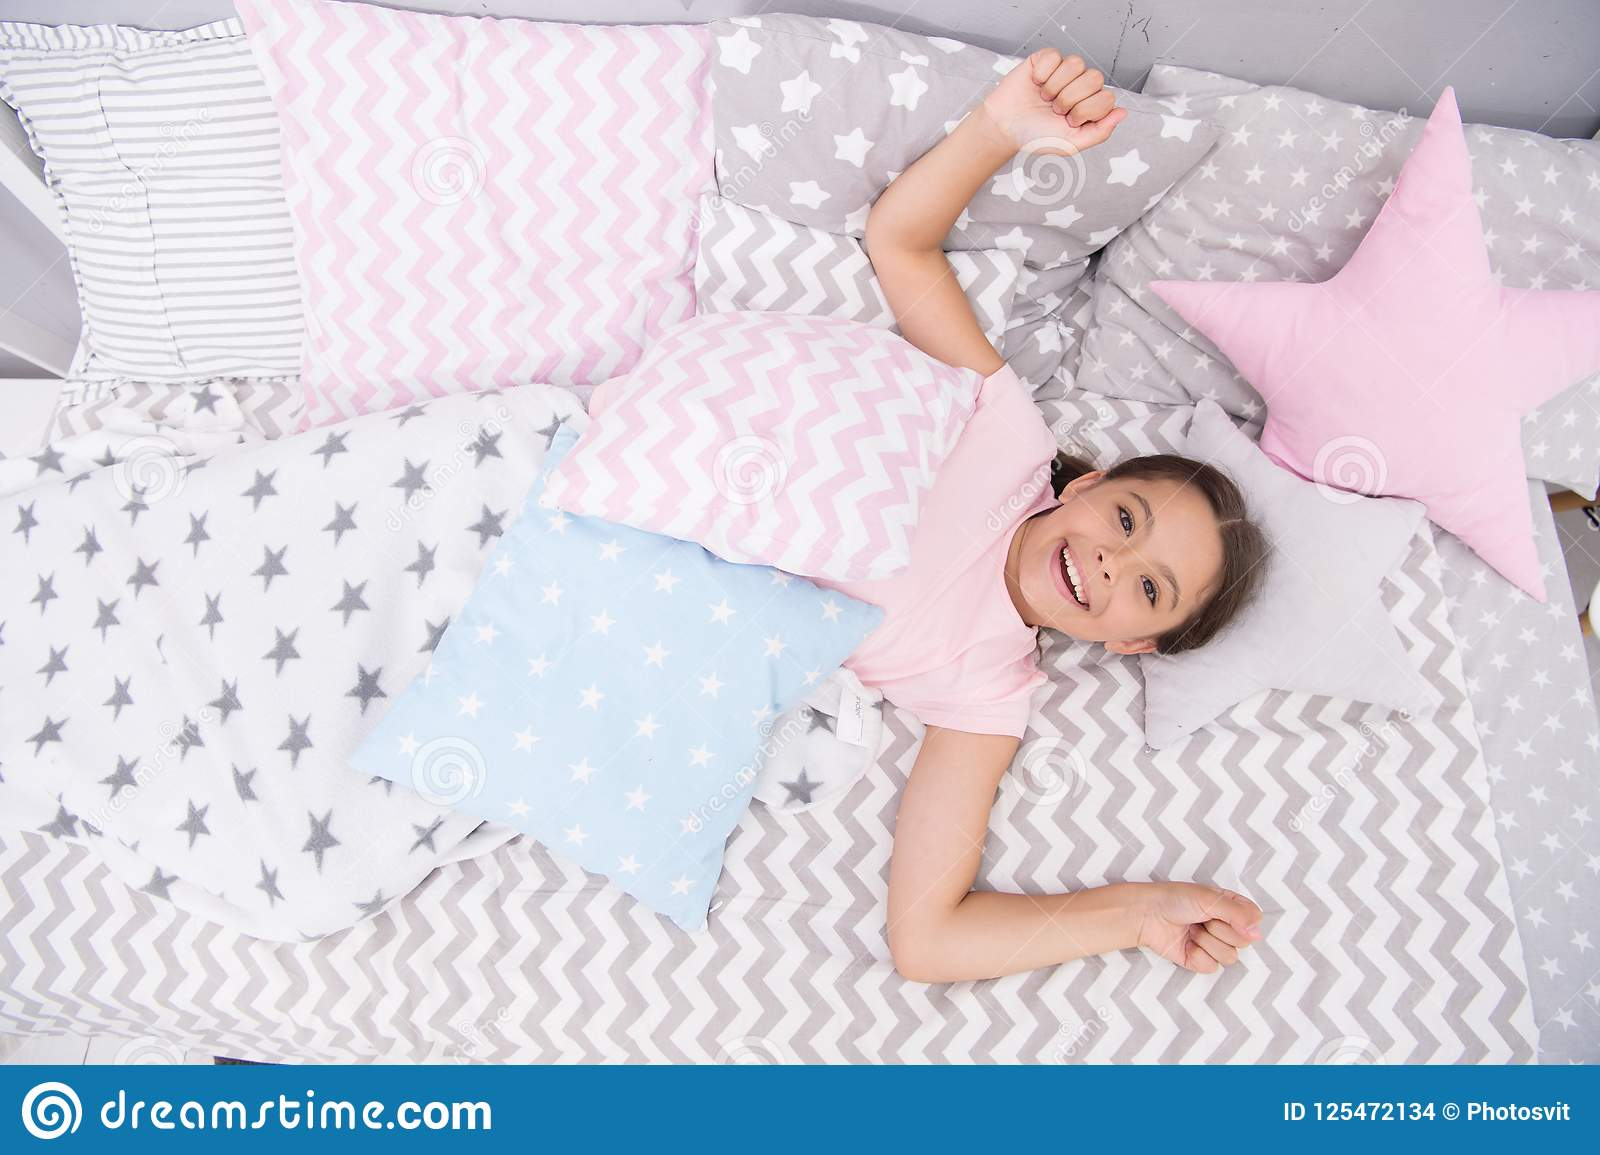 Wish her good morning. Girl child lay on bed her bedroom. Kid awake and full of energy. Pleasant time relax cozy bedroom